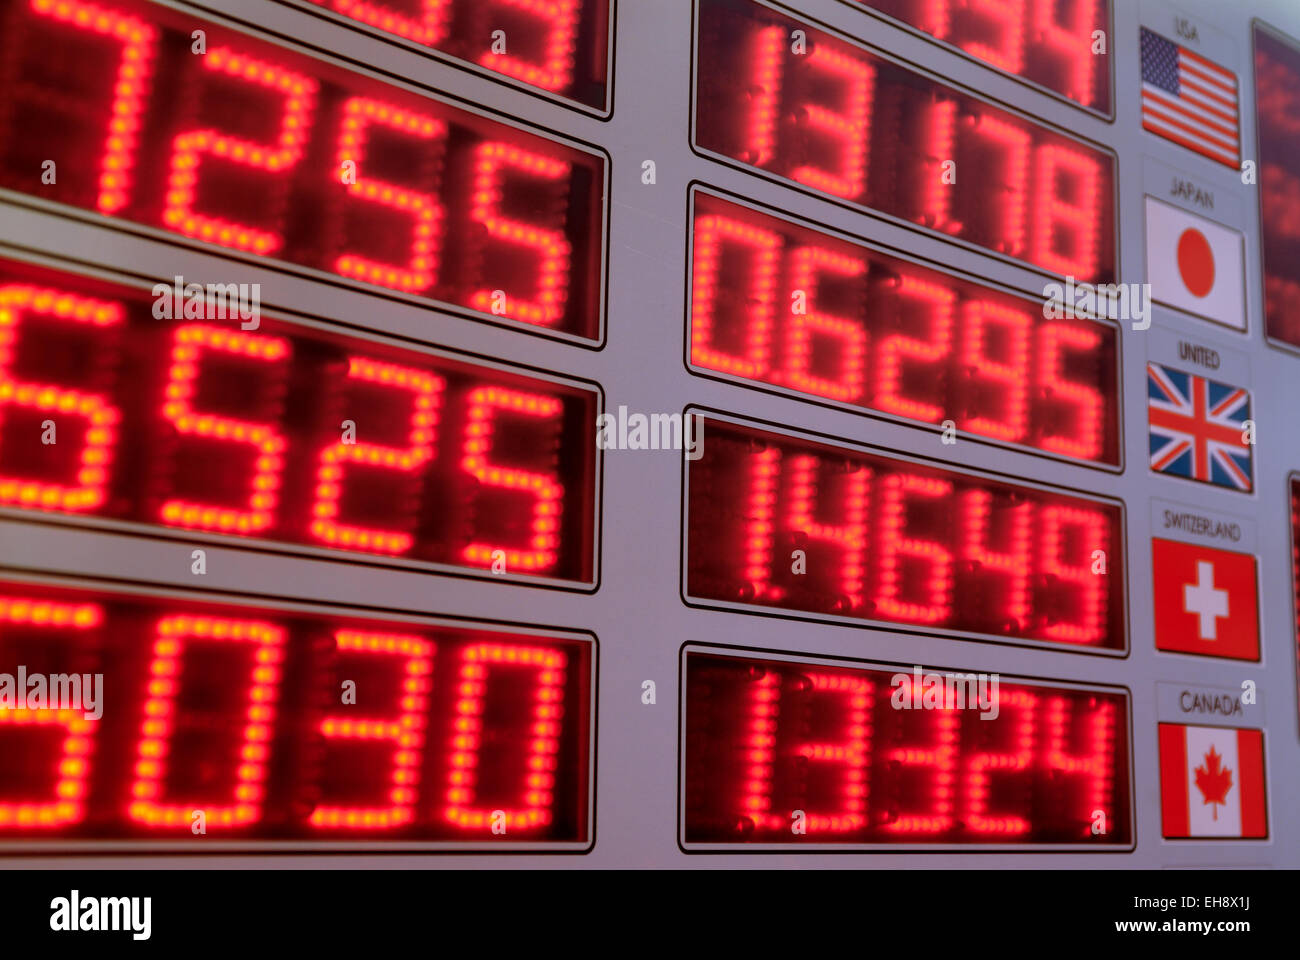 Display showing foreign currency exchange rates in a Money